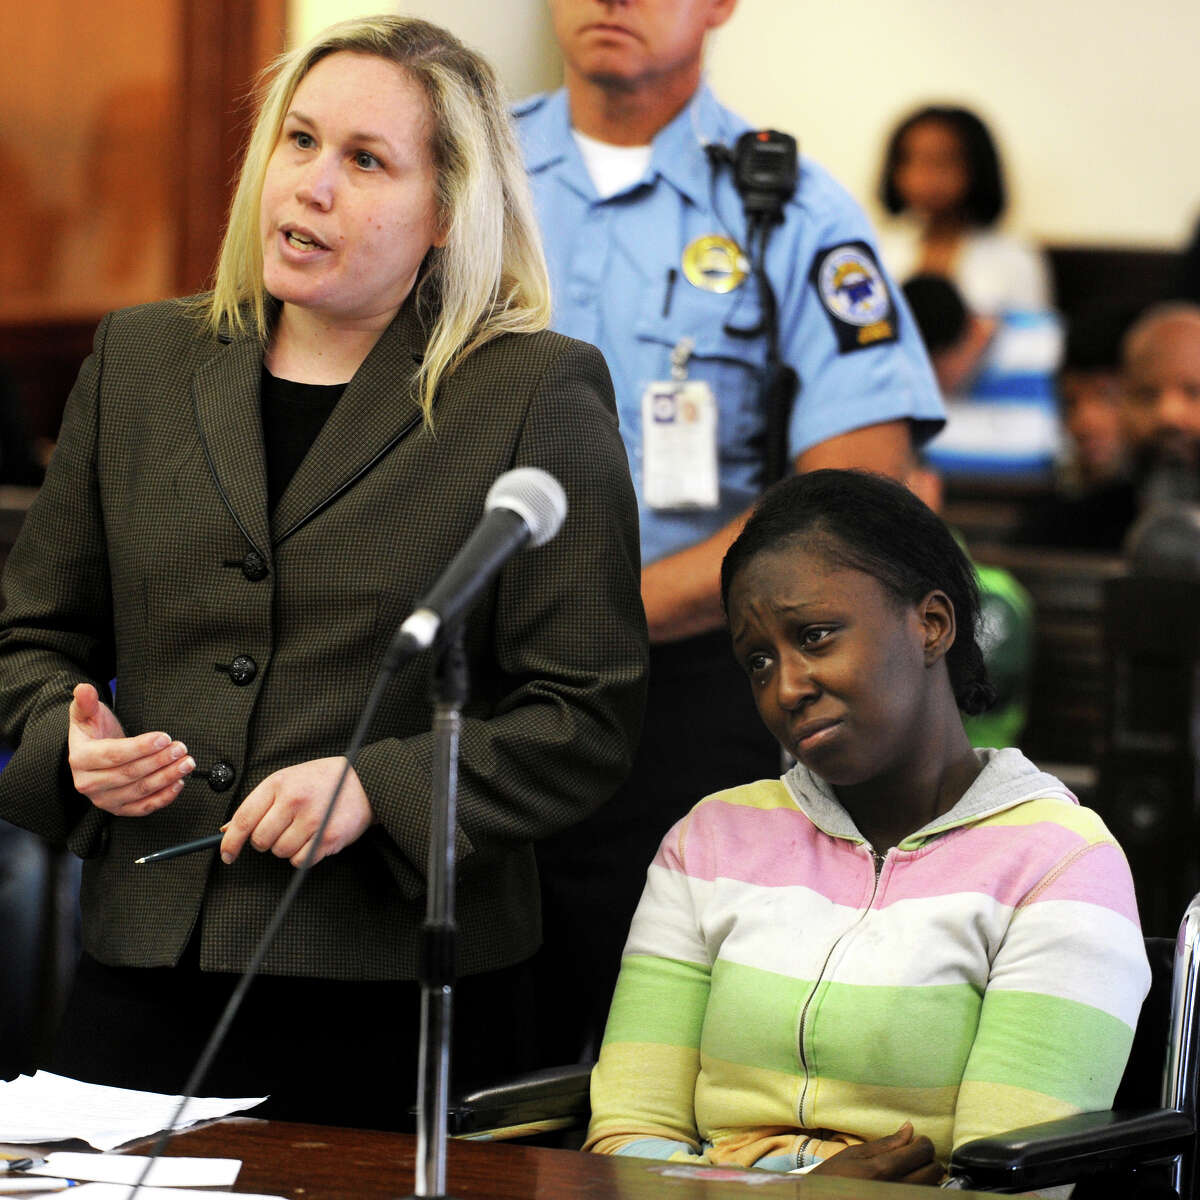 Cherelle Baldwin, right, is arraigned in Superior Court, in Bridgeport, Conn., June 11th, 2013. Baldwin has been charged with the murder of Jeffrey Brown, who, police say, died on May 18th after he was crushed against a garage's cinder-block wall by a car that Baldwin was driving. Baldwin is seen here with defense attorney Sam Kretzmer.